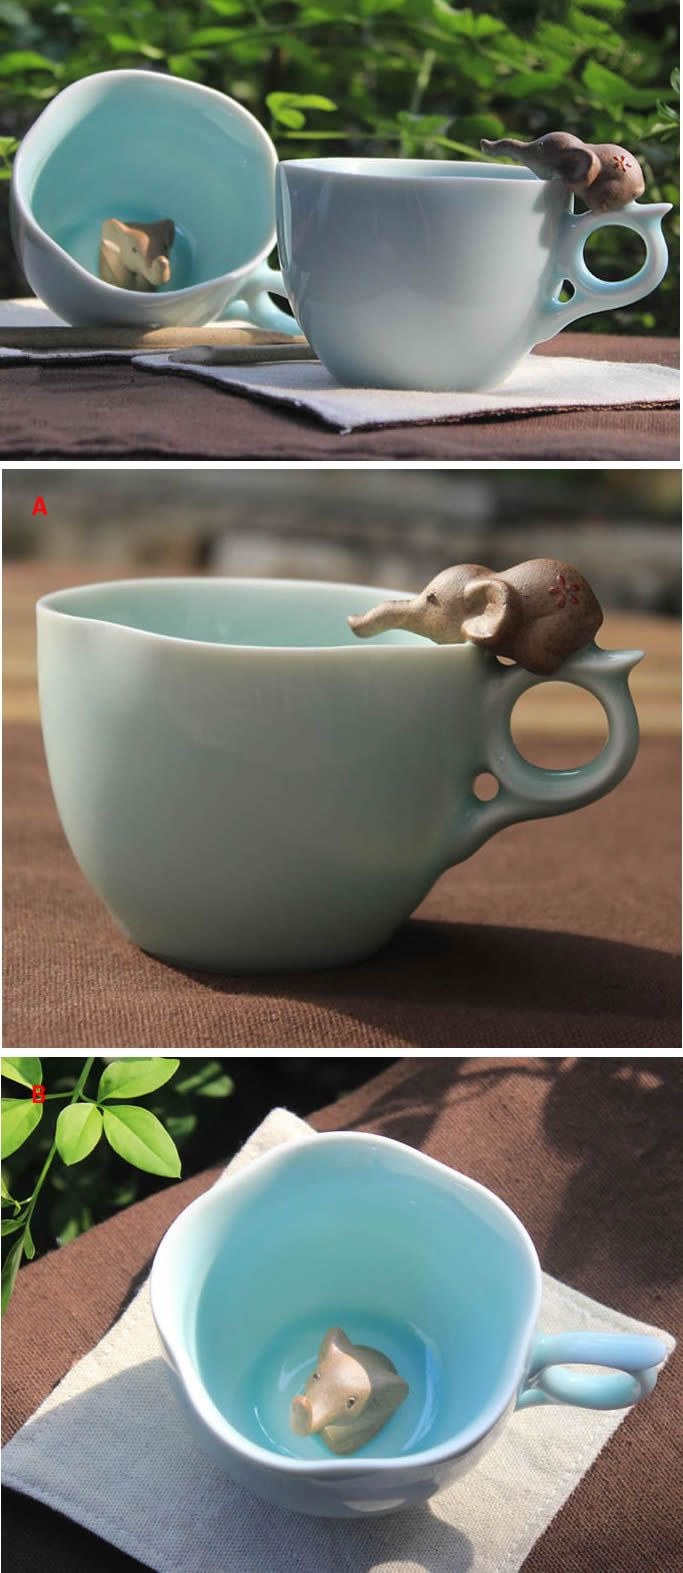 Ceramic Elephant Figurine Coffee Cup Coffee Mug More